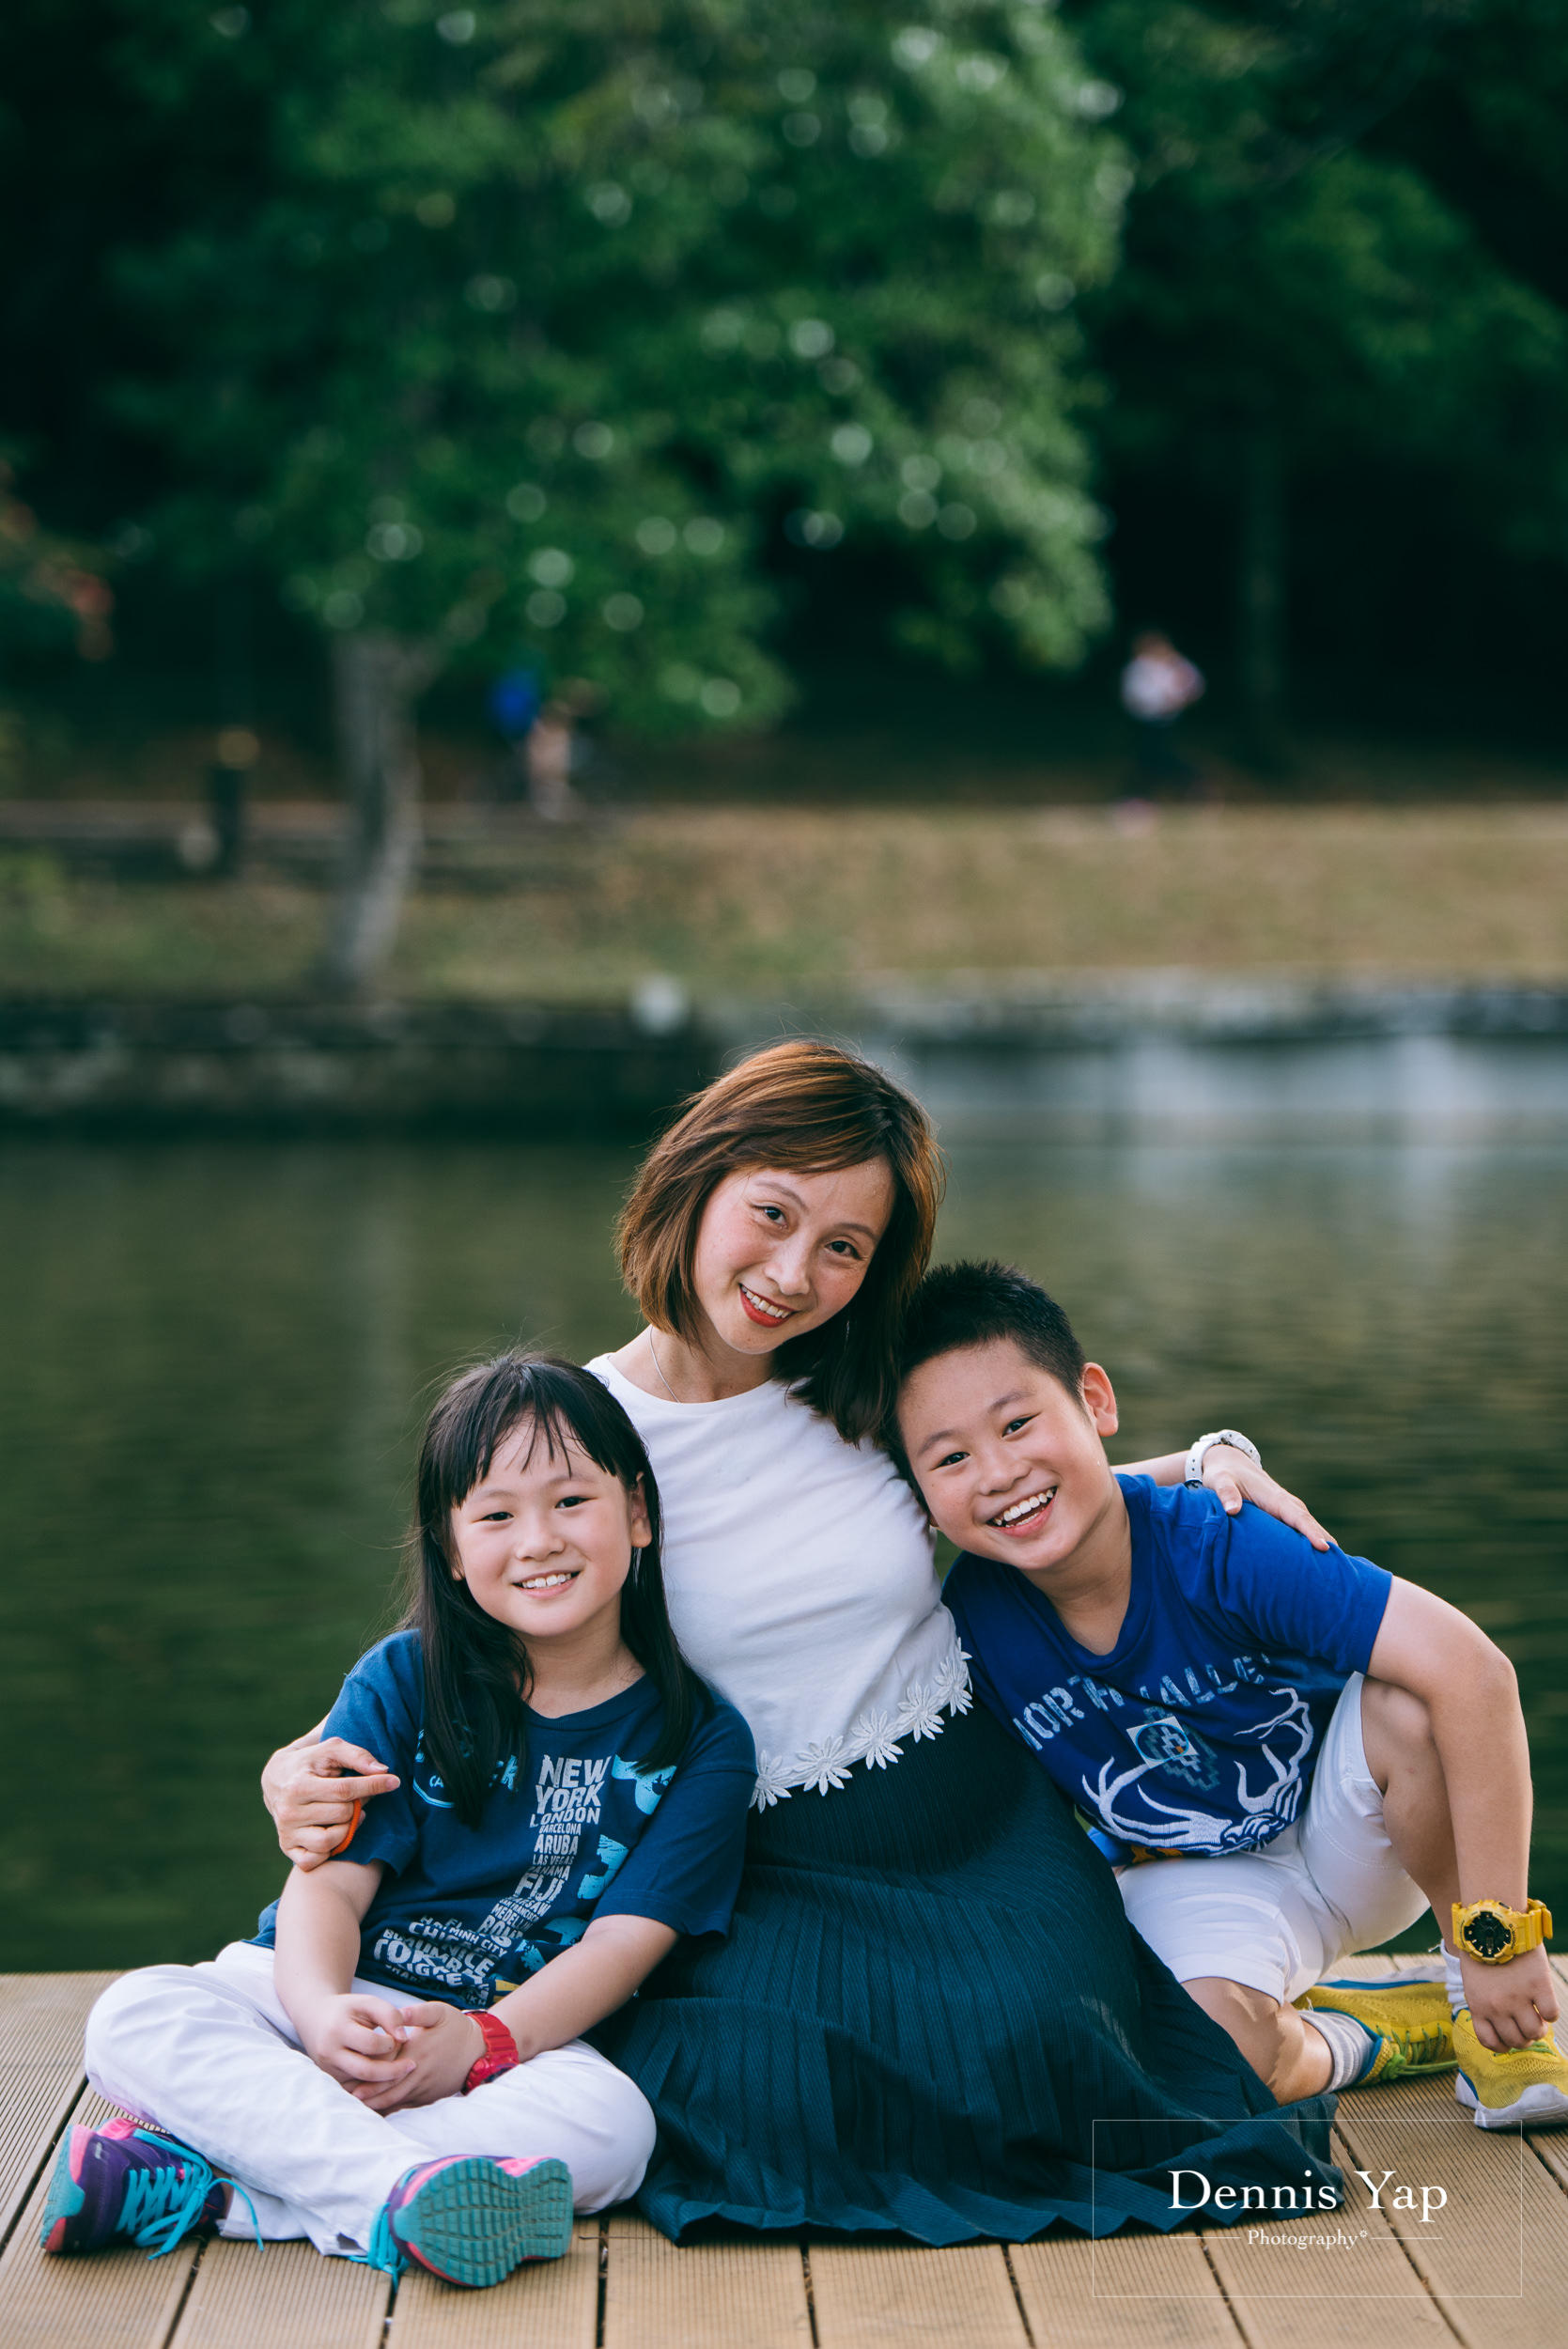 mourice baby 4 in 1 portrait dennis yap photography lake gardens family portrait-8.jpg